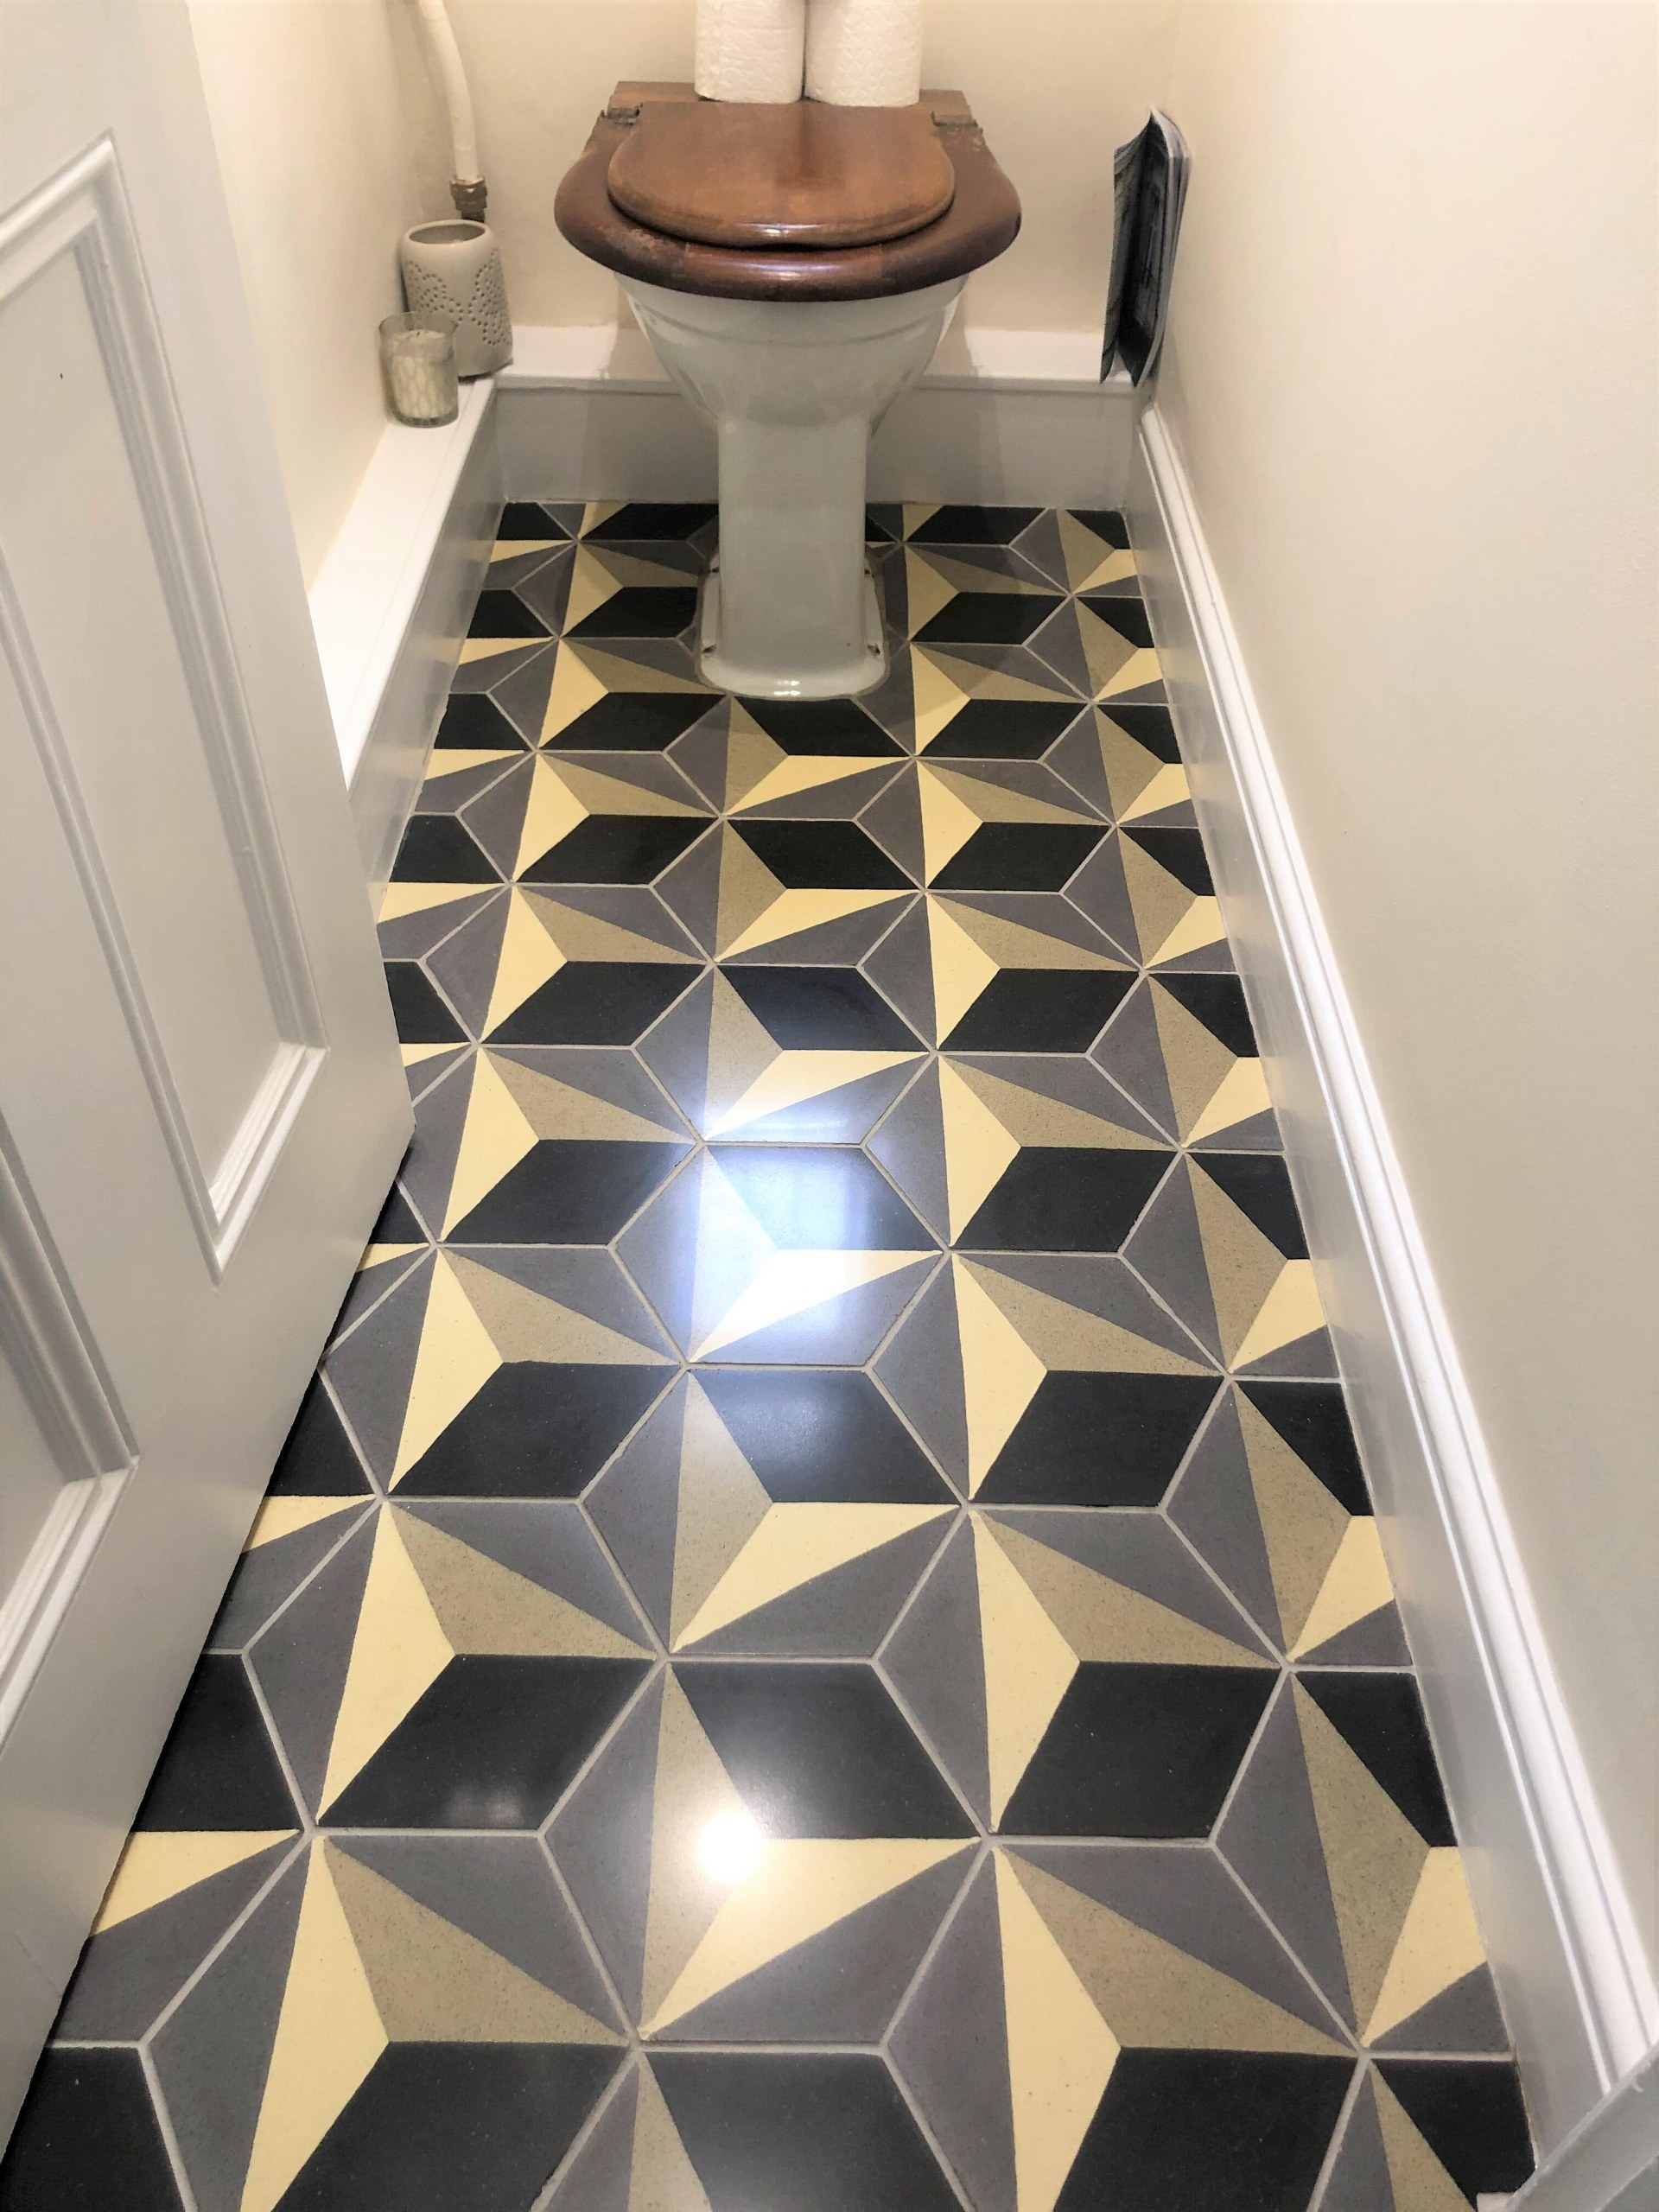 Encaustic Tiled Bathroom Floor After Renovation in Histon